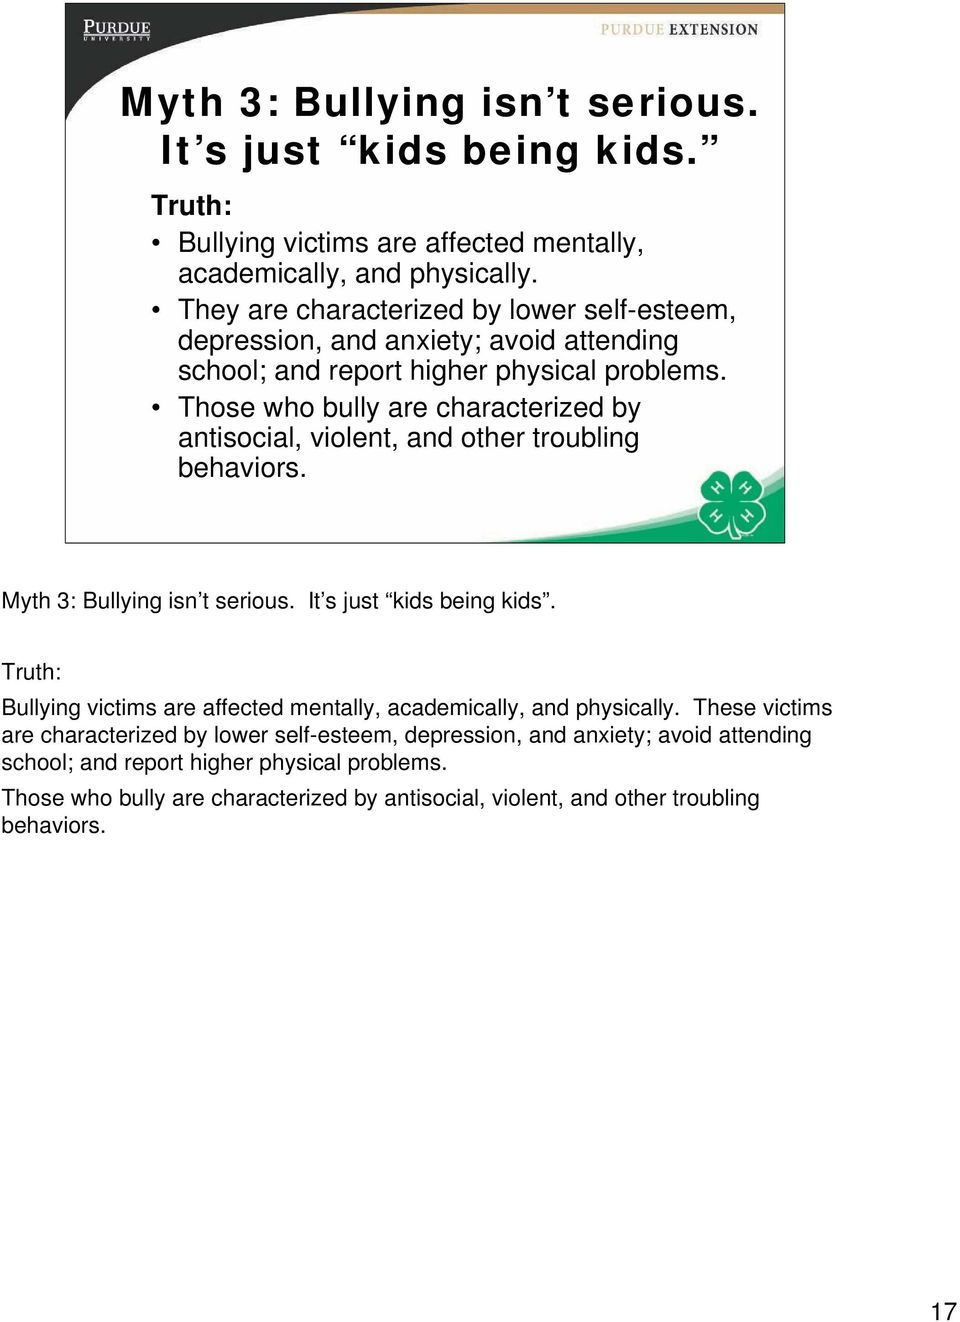 Those who bully are characterized by antisocial, violent, and other troubling behaviors.